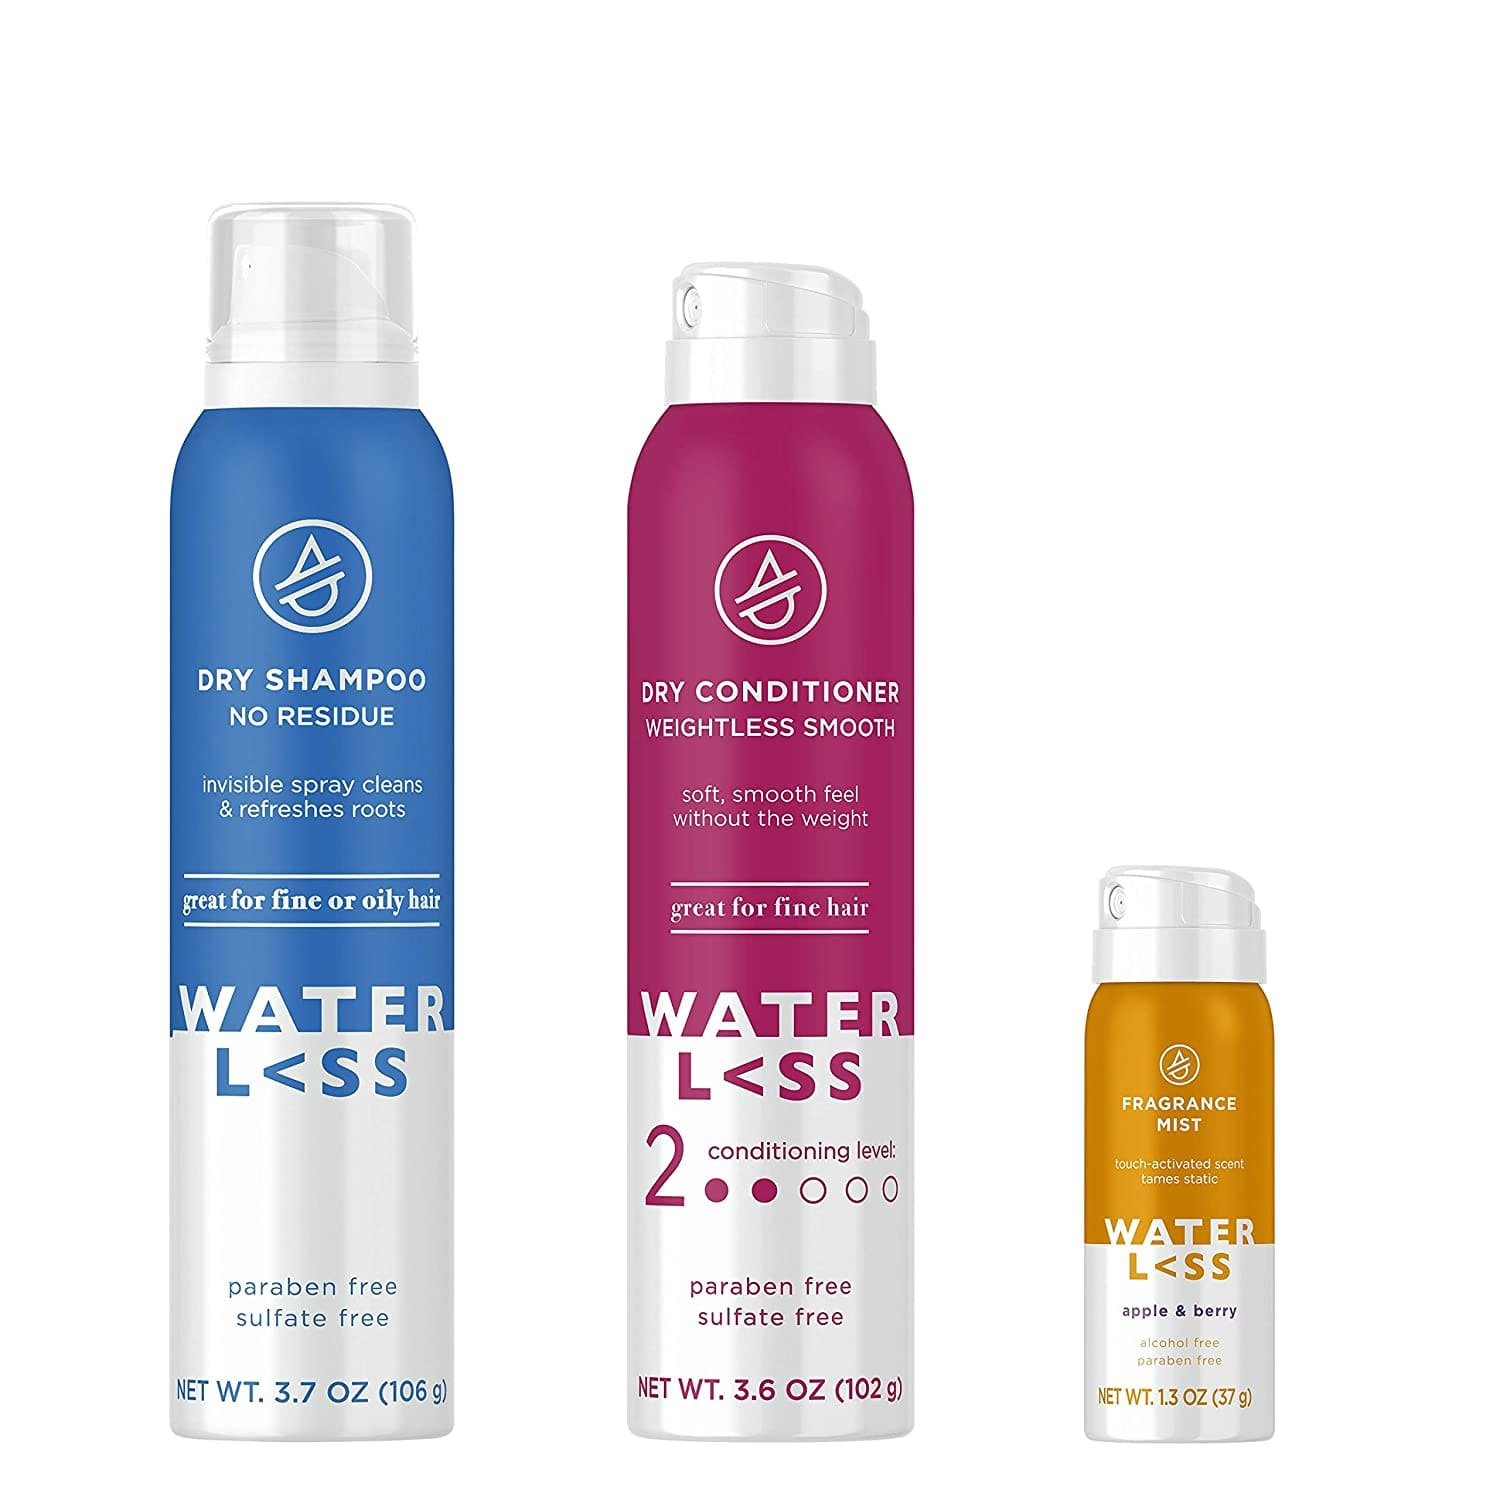 Amazon: Waterless Bundle Pack with Dry Shampoo Spray, Dry Conditioner and Fragrance Mist, Apple & Berry Scent $19.43 & MORE